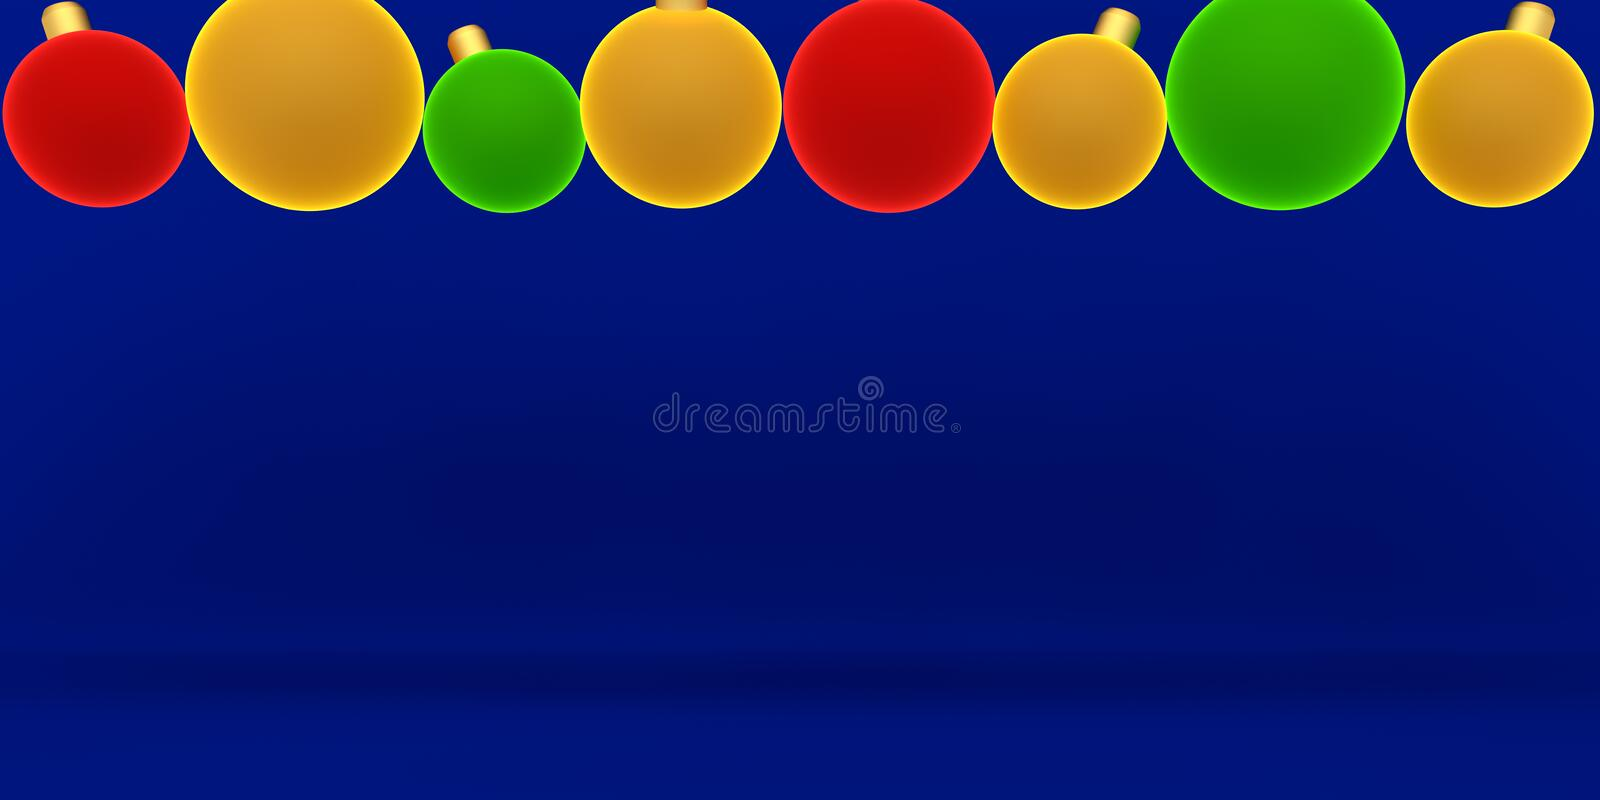 Christmas ornament and light tube for Chrismas and newyear background graphic resource 3D rendering stock illustration